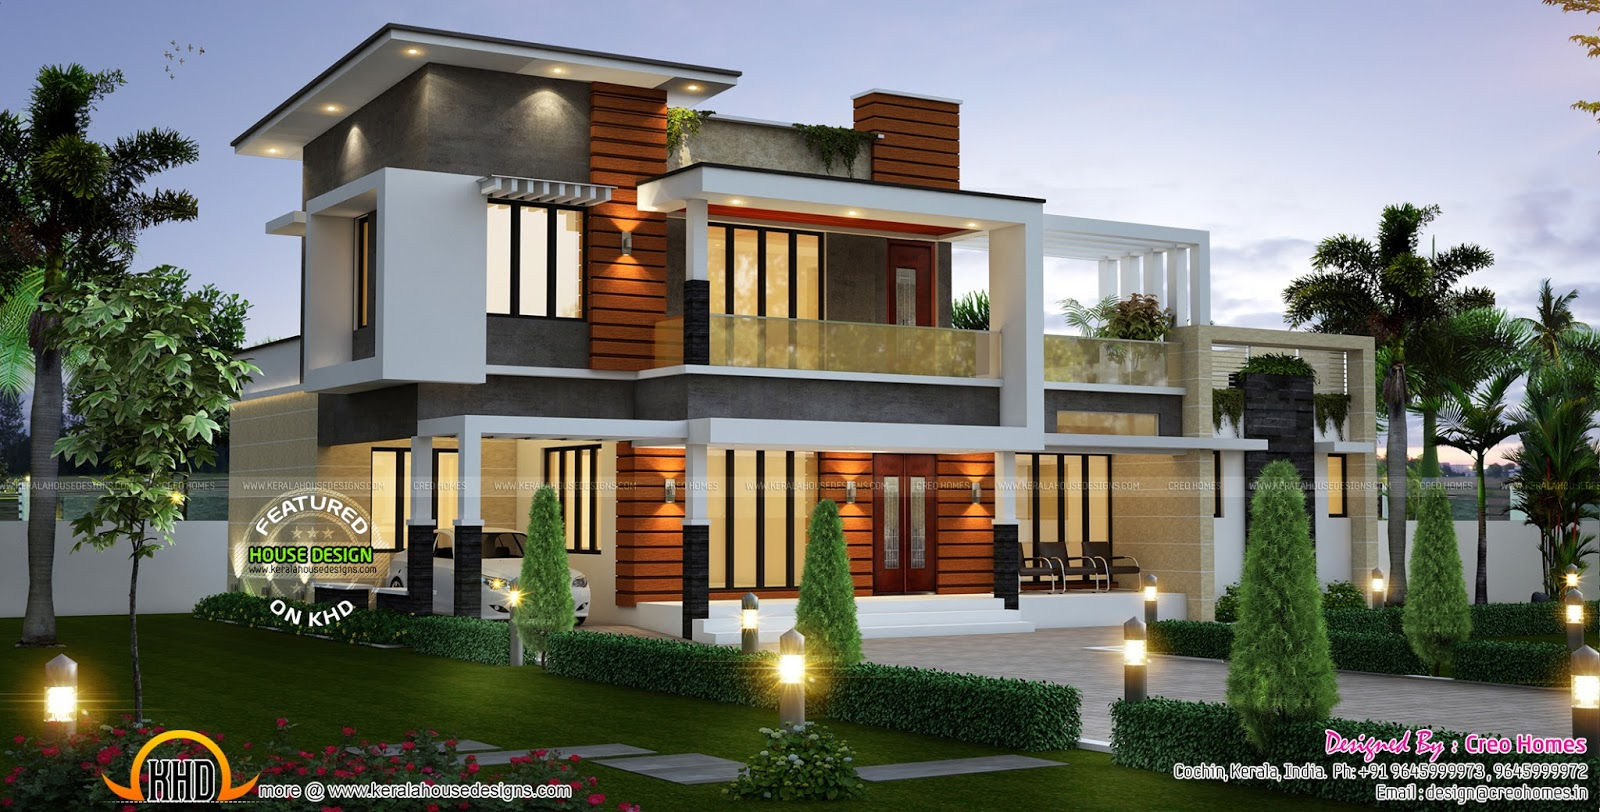 2075 sq ft modern contemporary house kerala home design for 3000 sq ft house cost